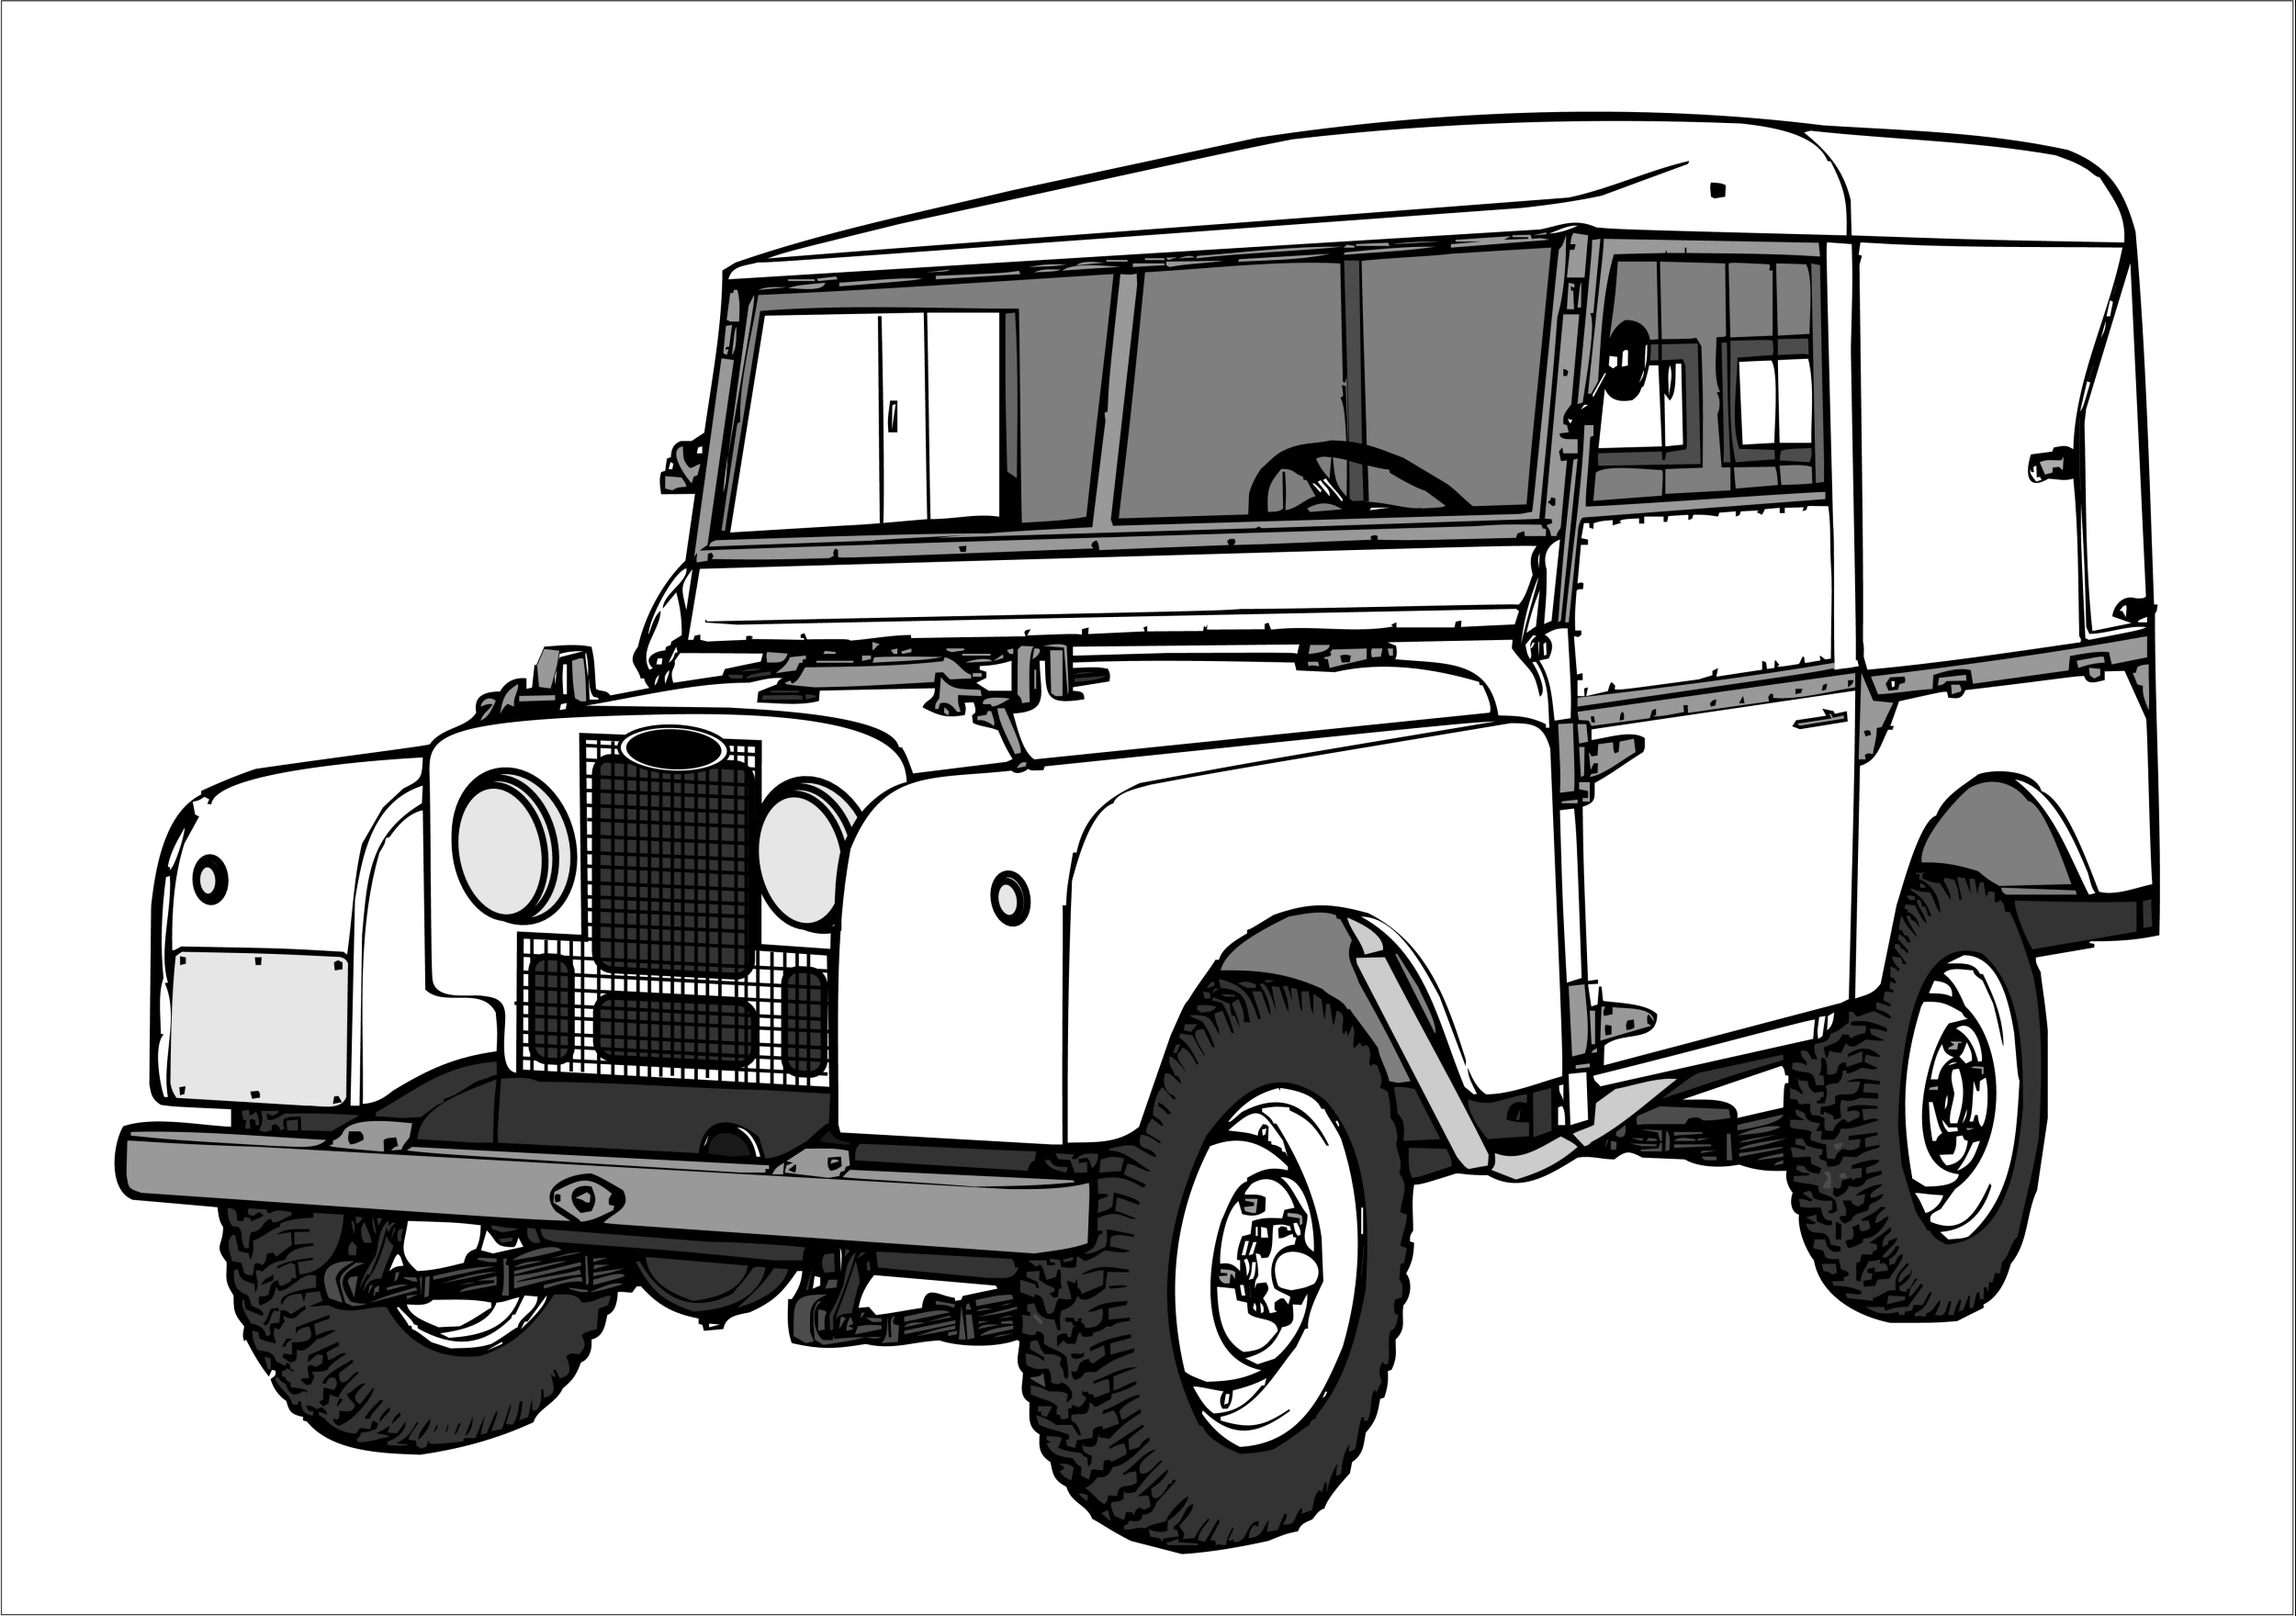 landrover - Google zoeken | Coloring Pages | Pinterest | Land rovers ...